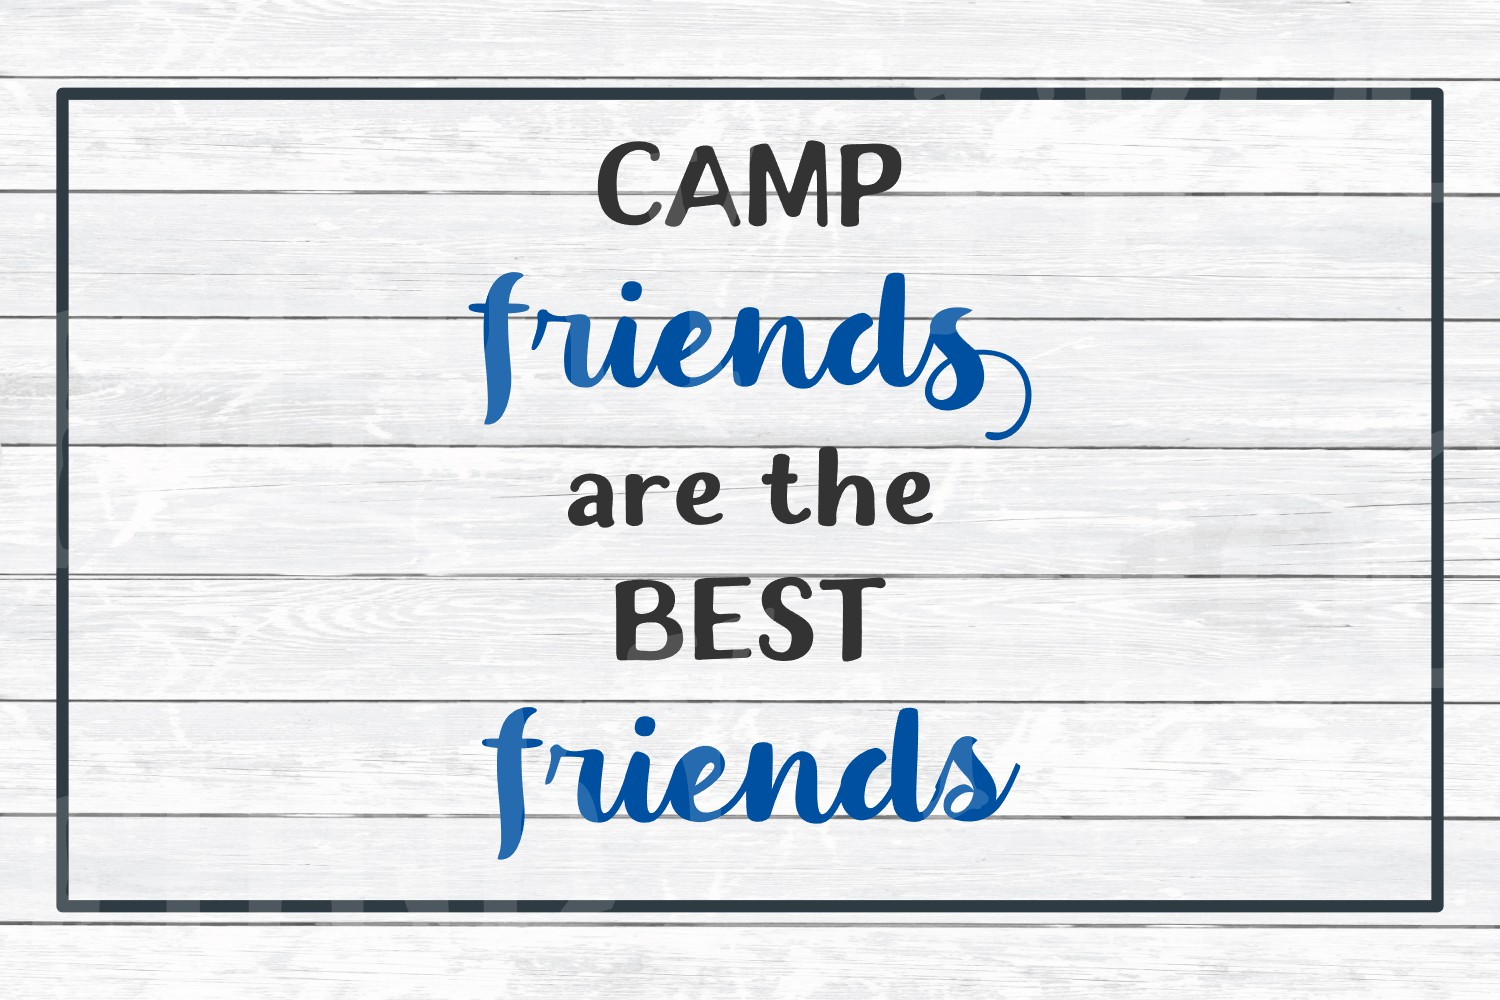 Camp Friends are the Best Friends, SVG Cut File for Crafters example image 2